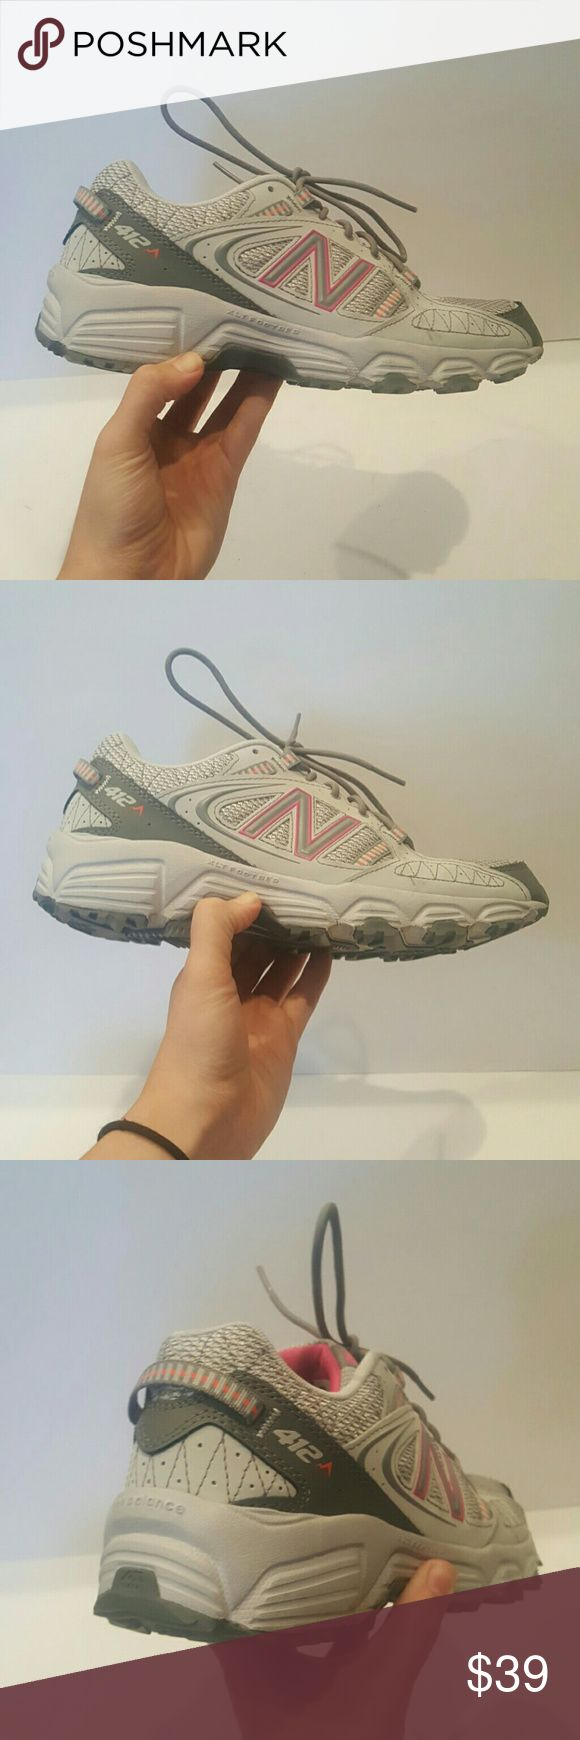 NEW BALANCE NB WOMENS 412 HIKING SHOES NEW BALANCE NB WOMENS  412  HIKING SNEAKERS GREY AND PINK SIZE 9.5 XLT GREY AND PINK LIKE NEW  FEW MARKS ON SHOES SMALL WEAR TO SHOE LaCE New Balance Shoes Sneakers